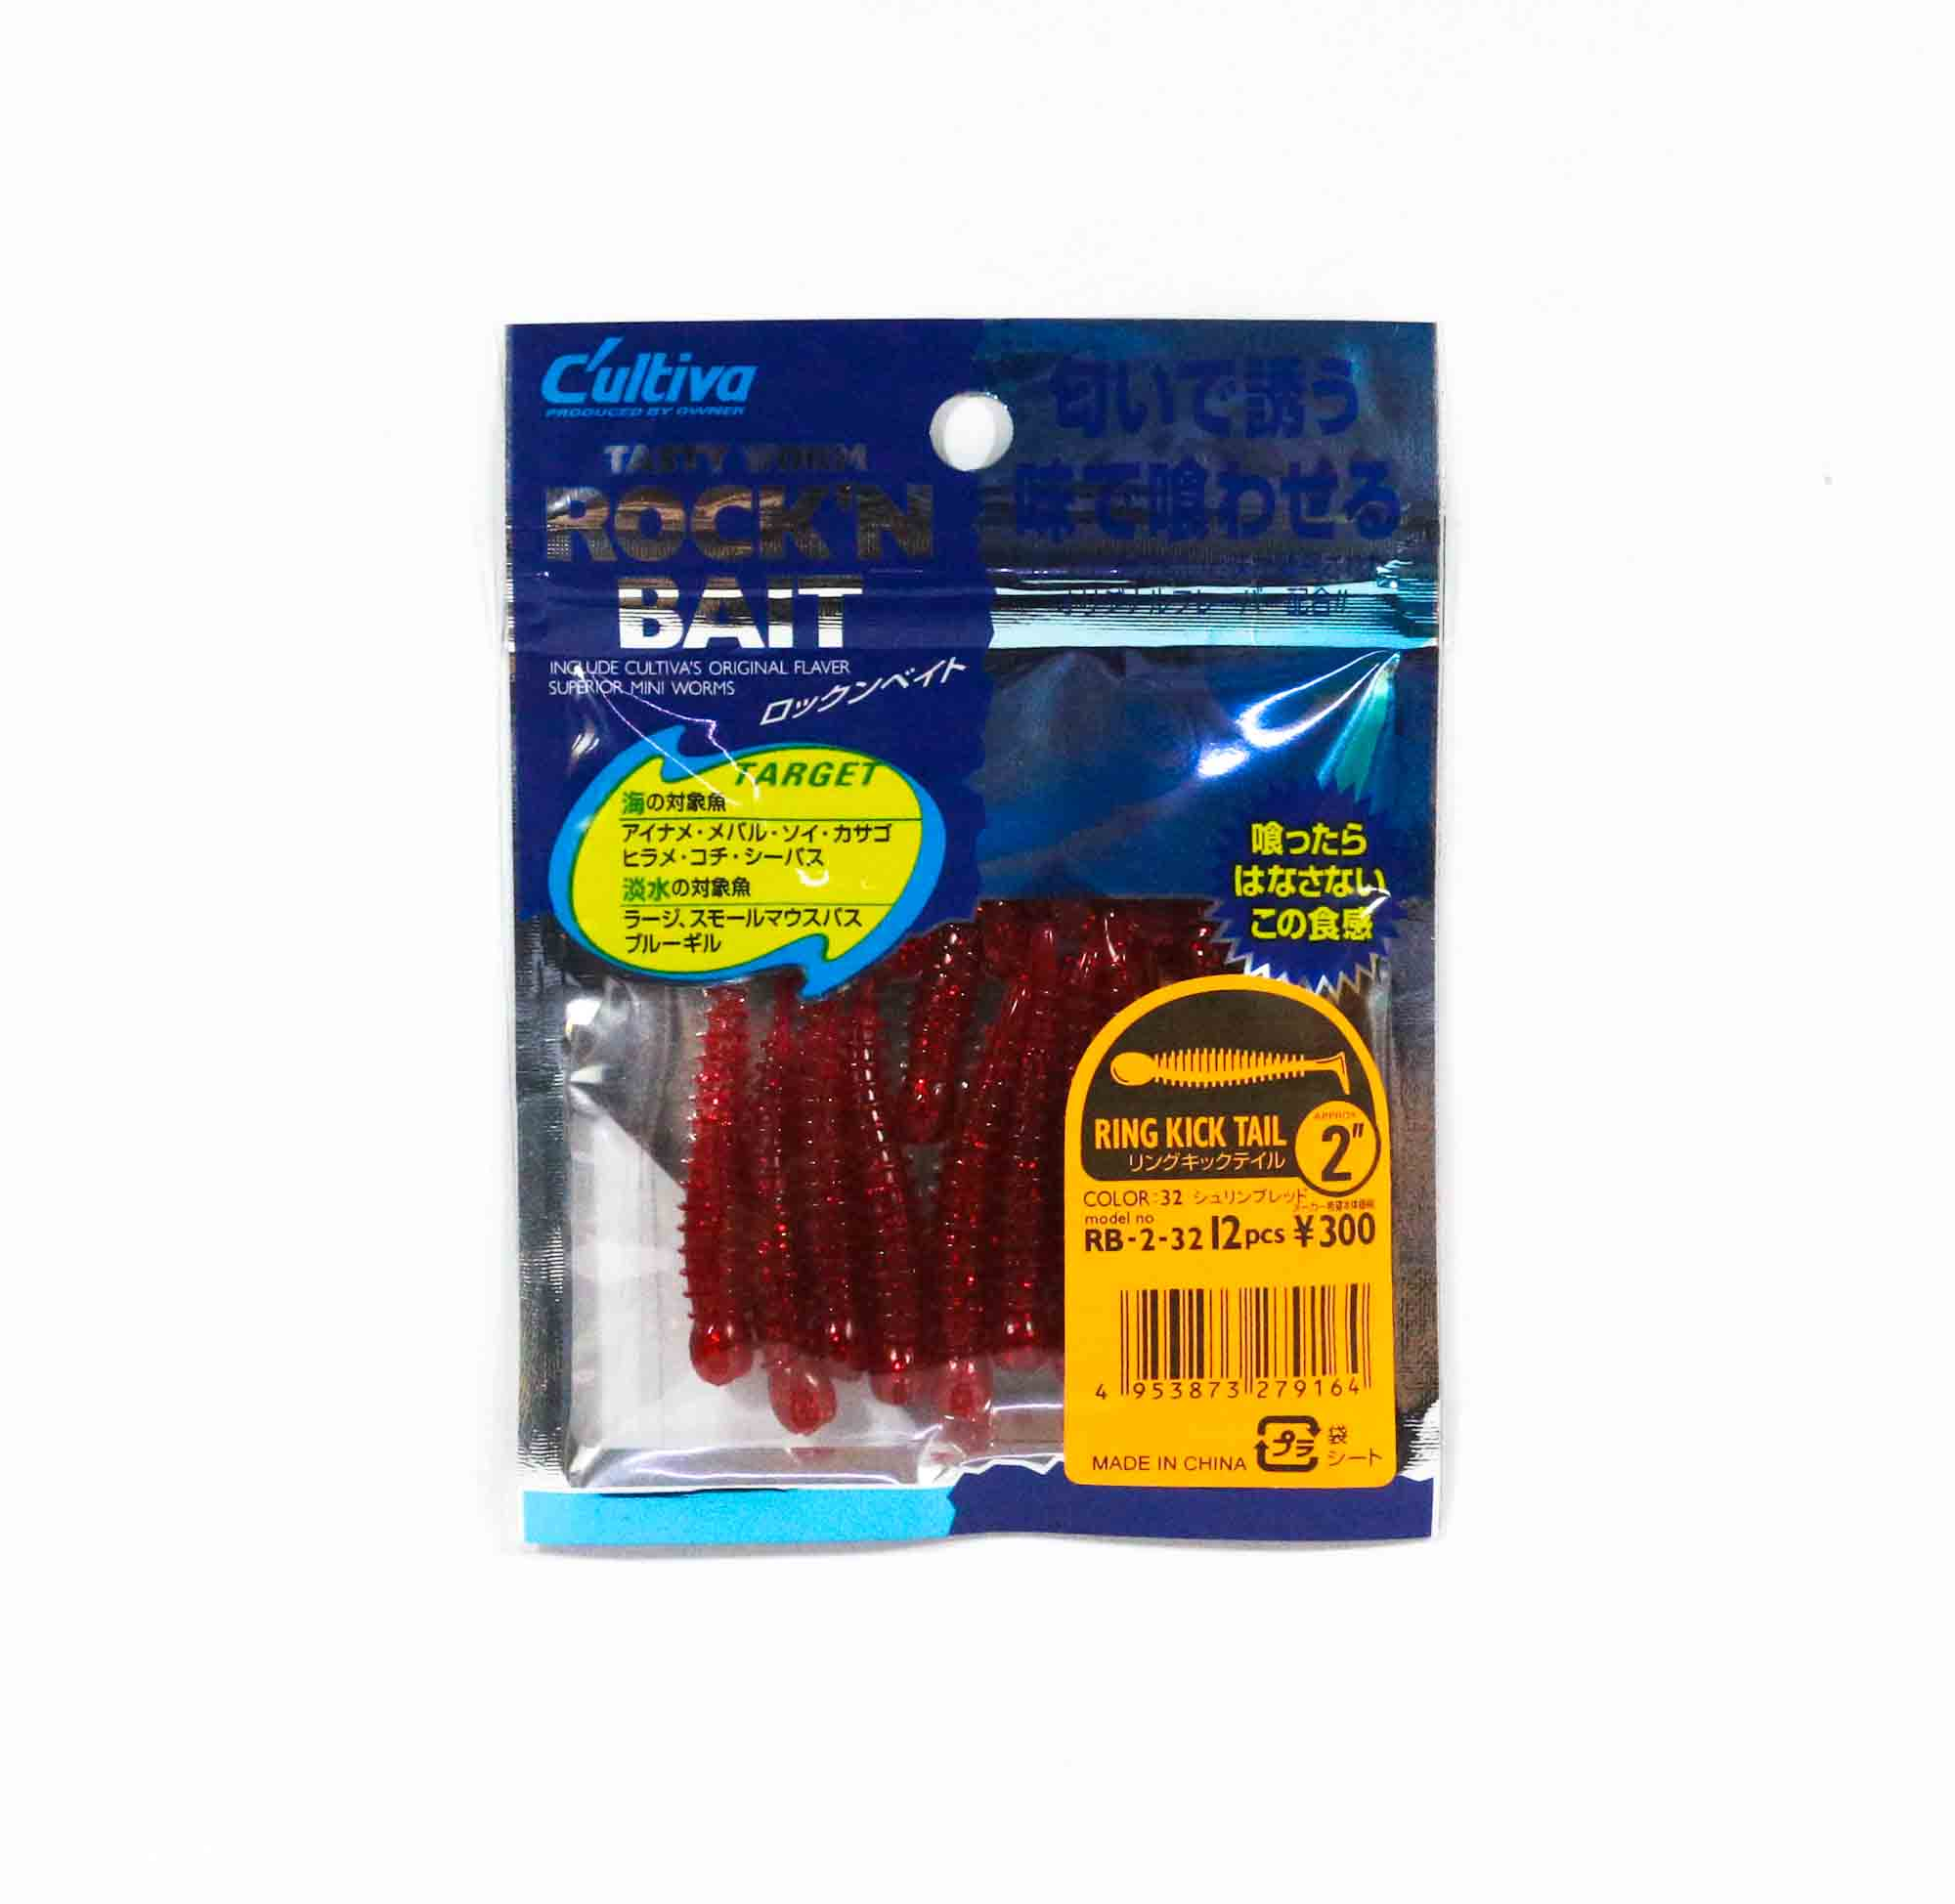 Owner Soft Lure RB-2 Ring Kick Tail 12 Pieces 2 Inches 32 (9164)